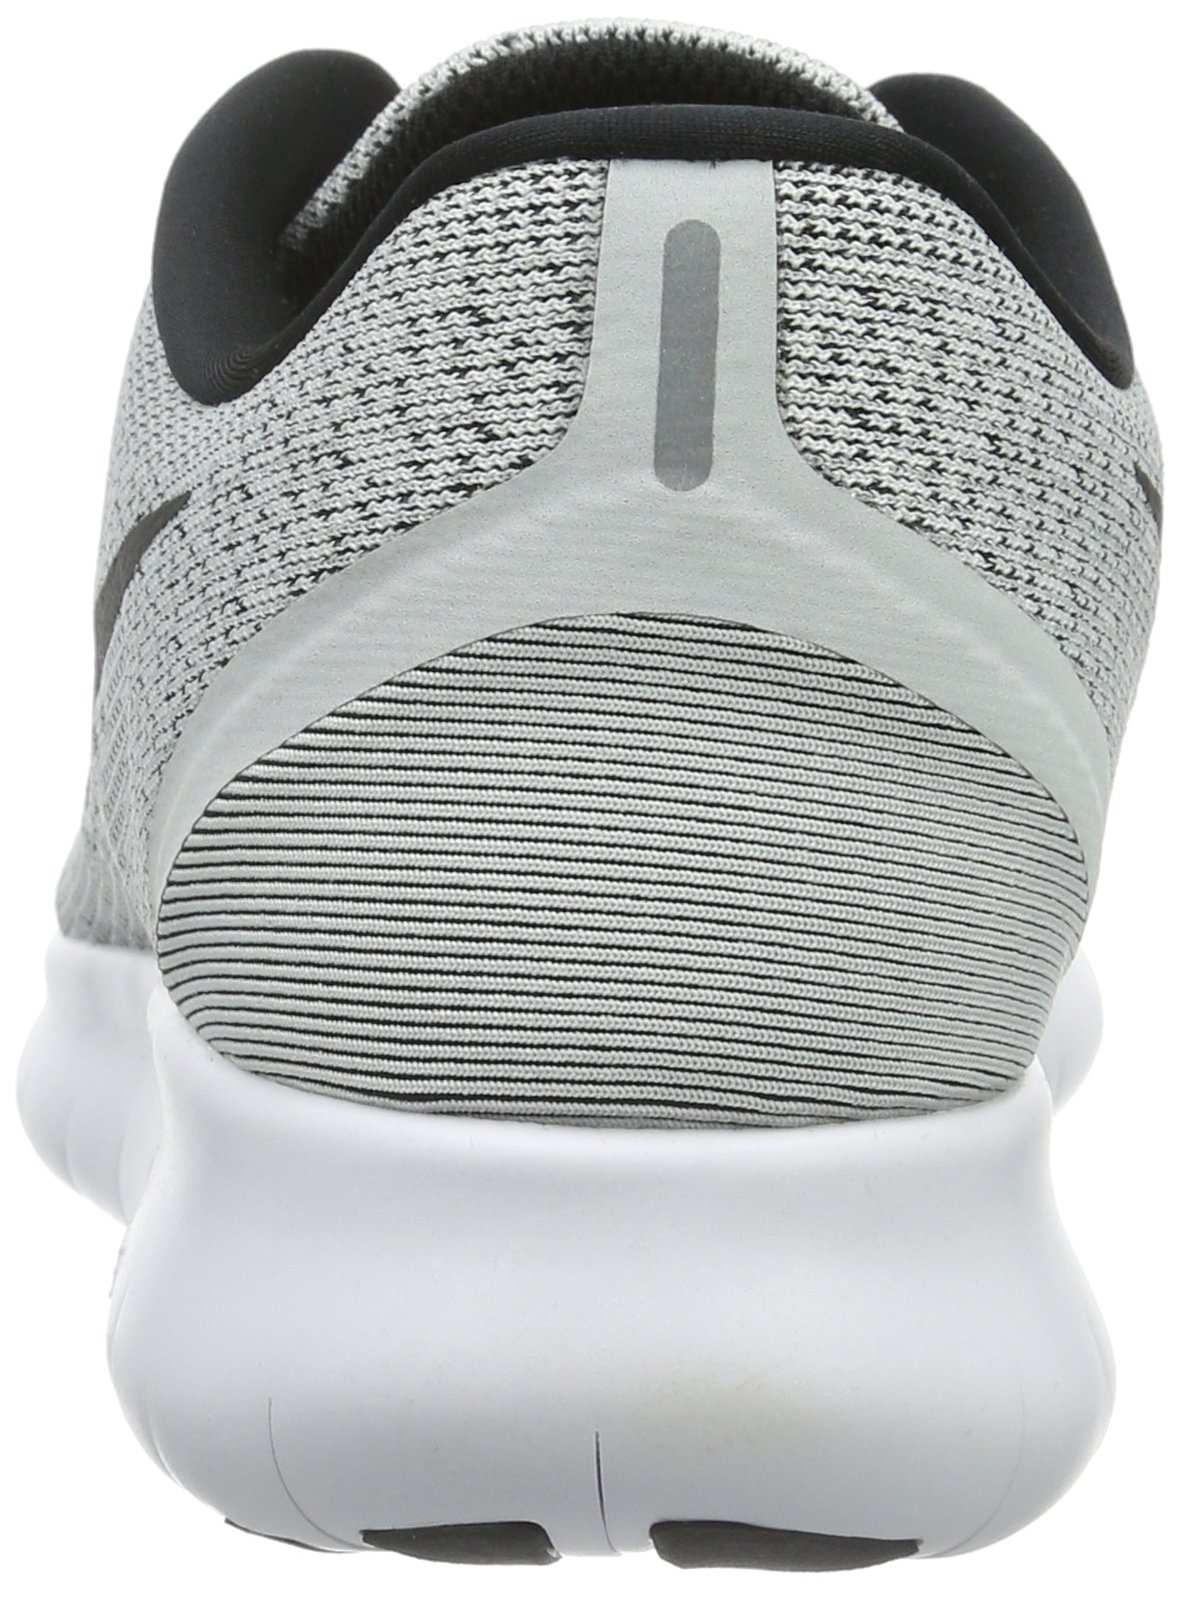 Nike Womens Free Rn Low Top Lace Up Running Sneaker, White, Size 5.5 by Nike (Image #2)